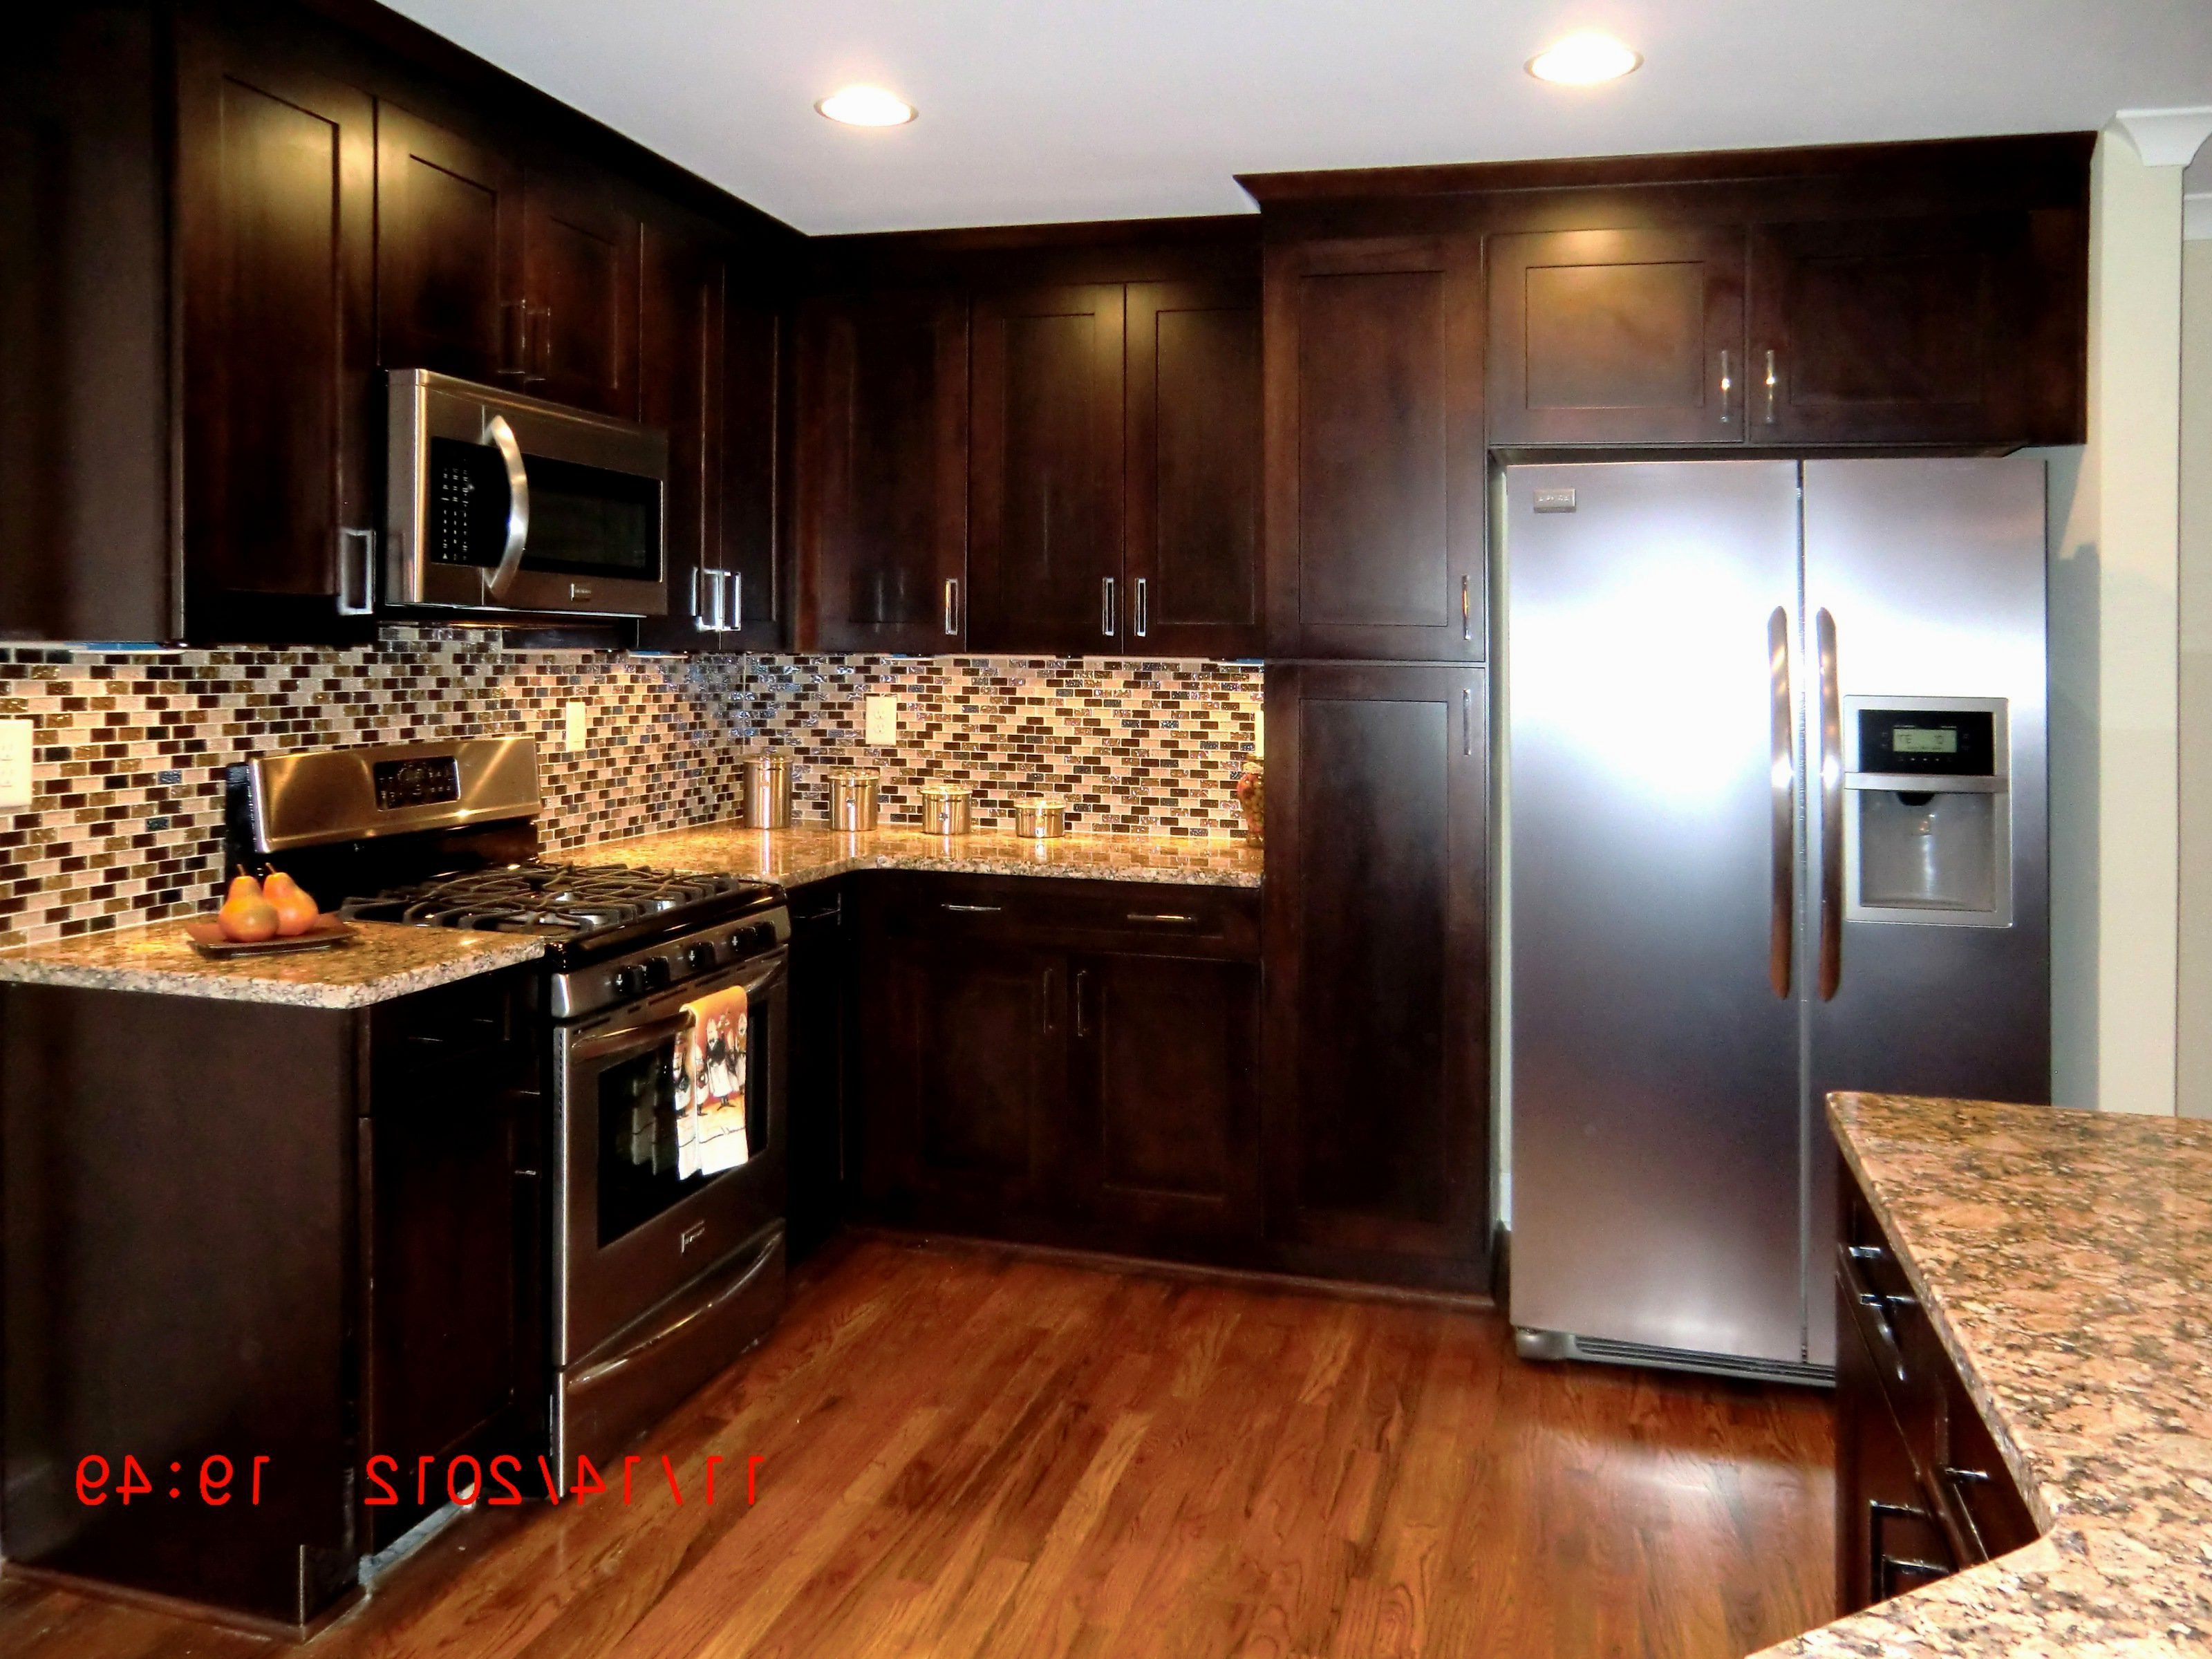 cherry hardwood flooring home depot of furniture countertops cherry wood kitchen cabinets home depot in furniture countertops cherry wood kitchen cabinets home depot inspiration of white cabinets home depot